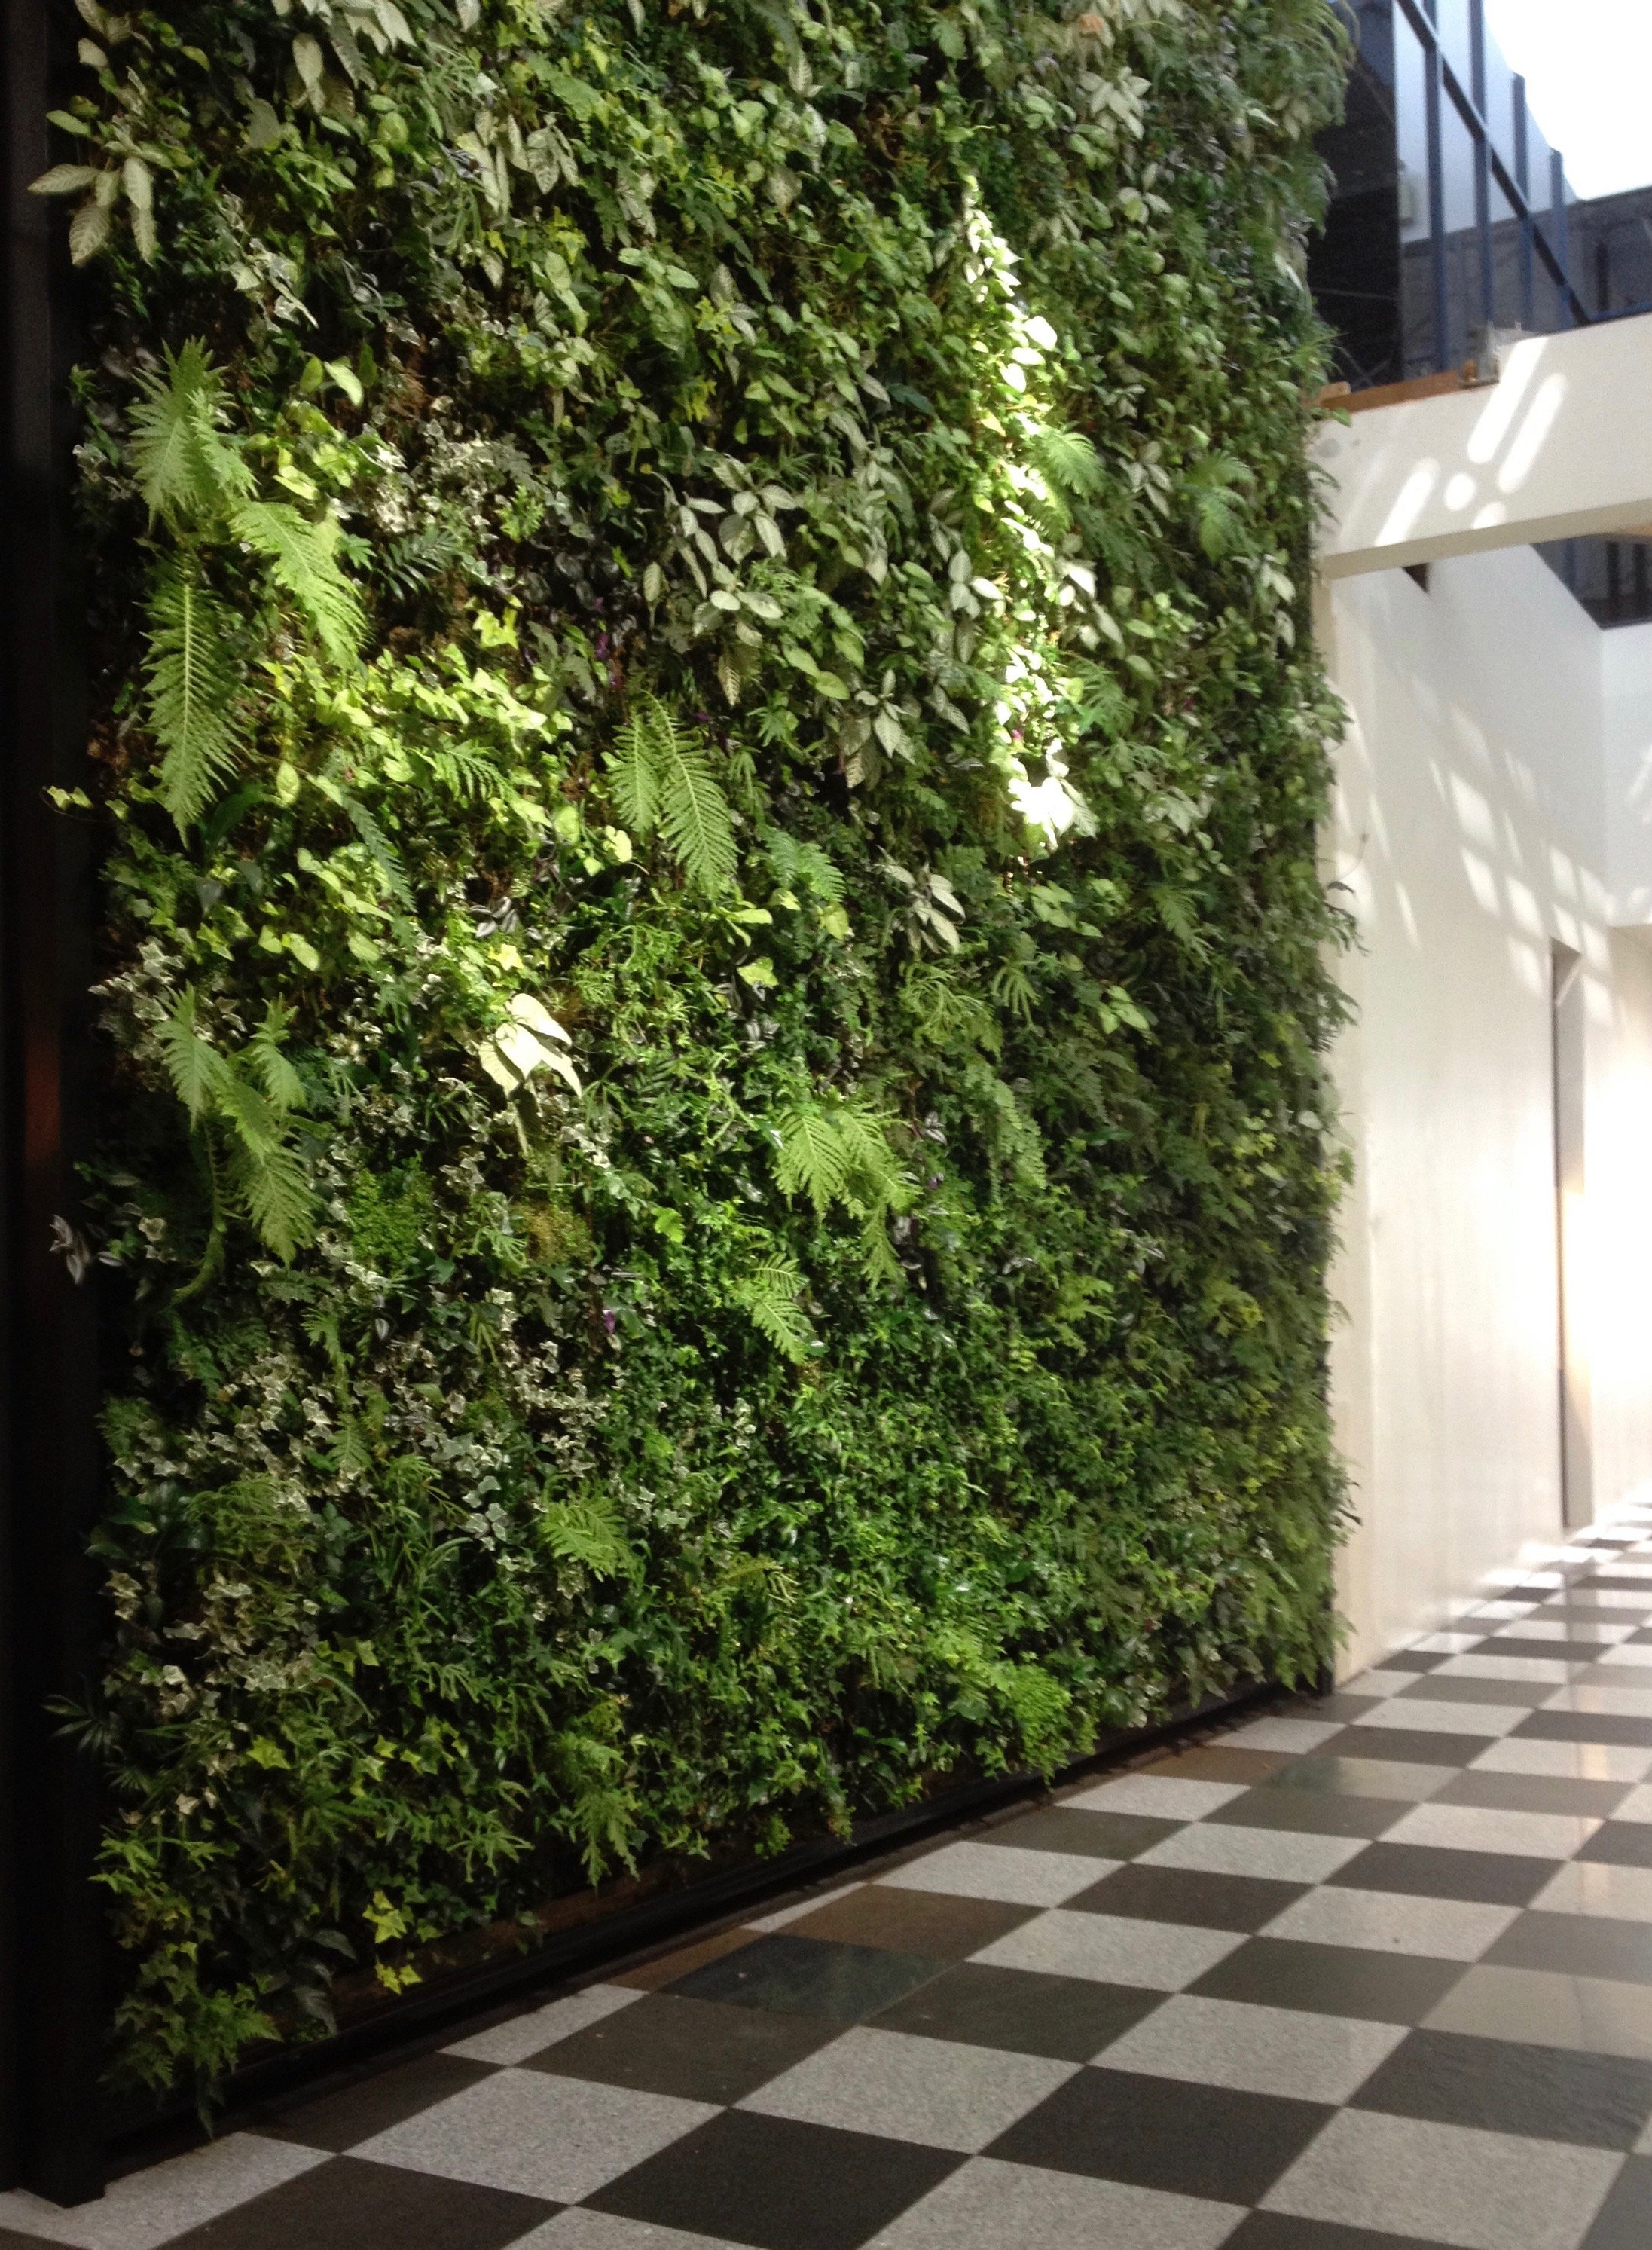 The living wall in Harvest Court, George St, Dunedin.